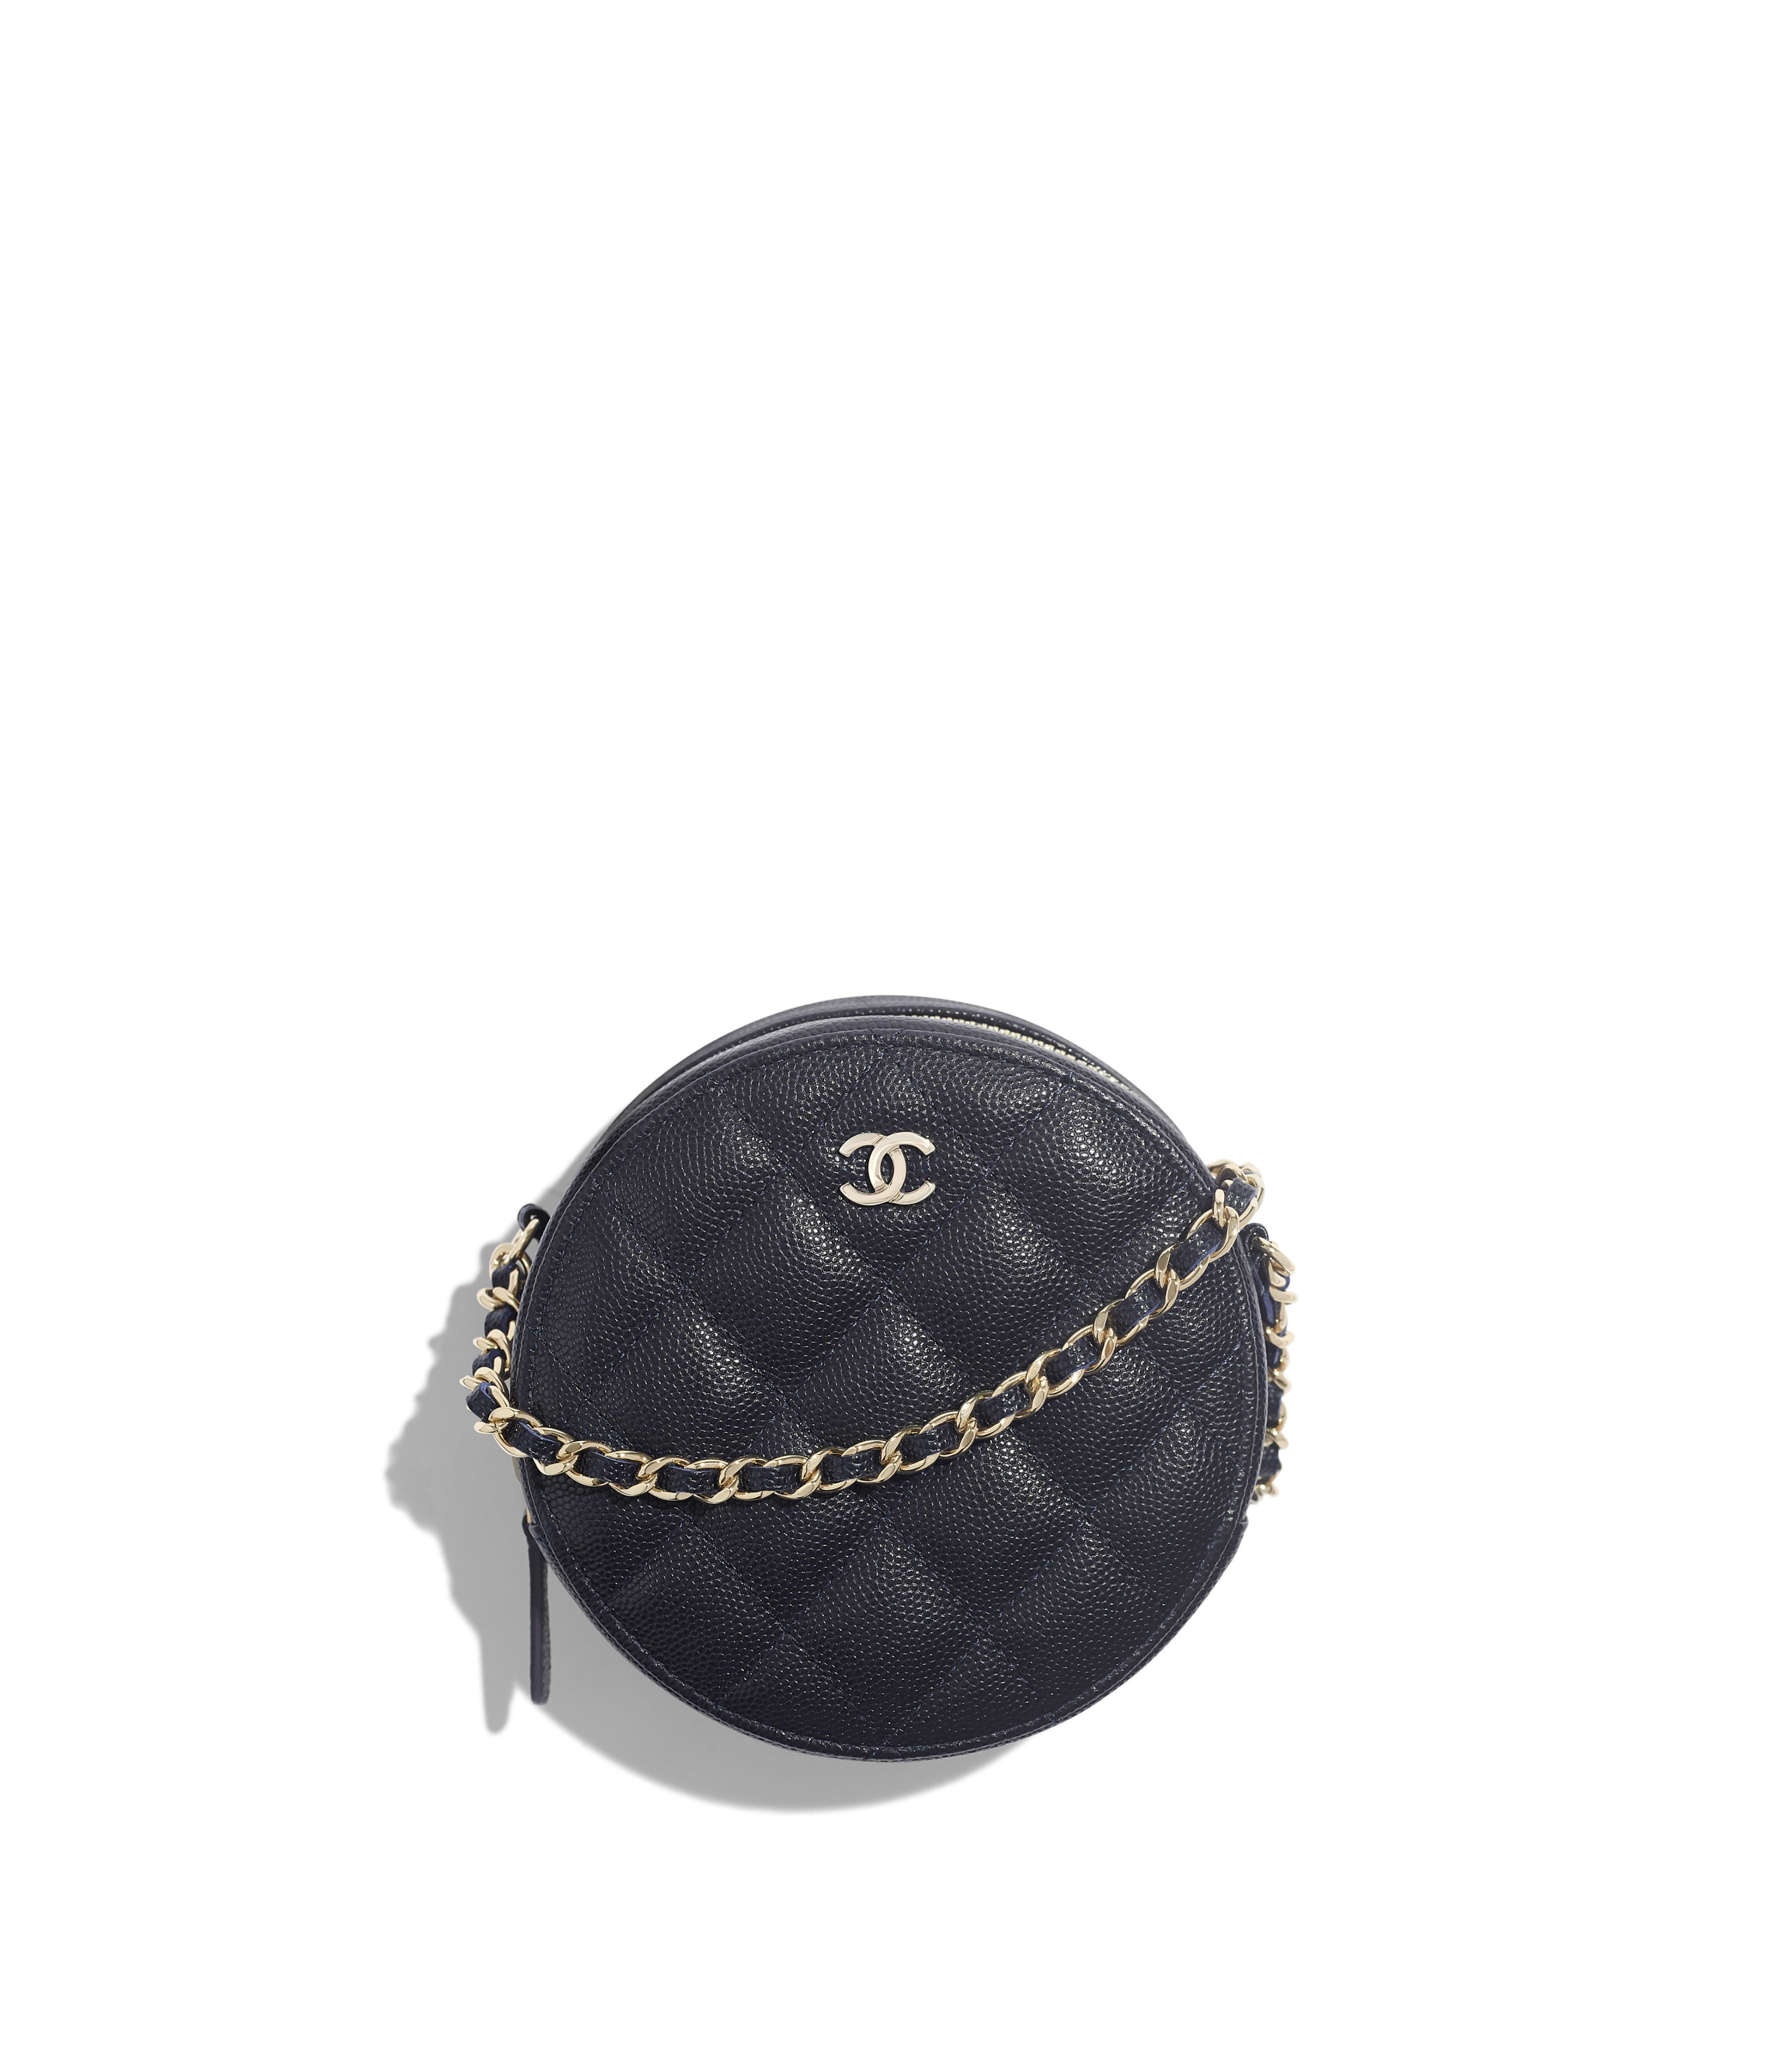 6126298c69b1d Classic Clutch with Chain Grained Calfskin & Gold-Tone Metal, Navy Blue  Ref. AP0245Y33352N4858